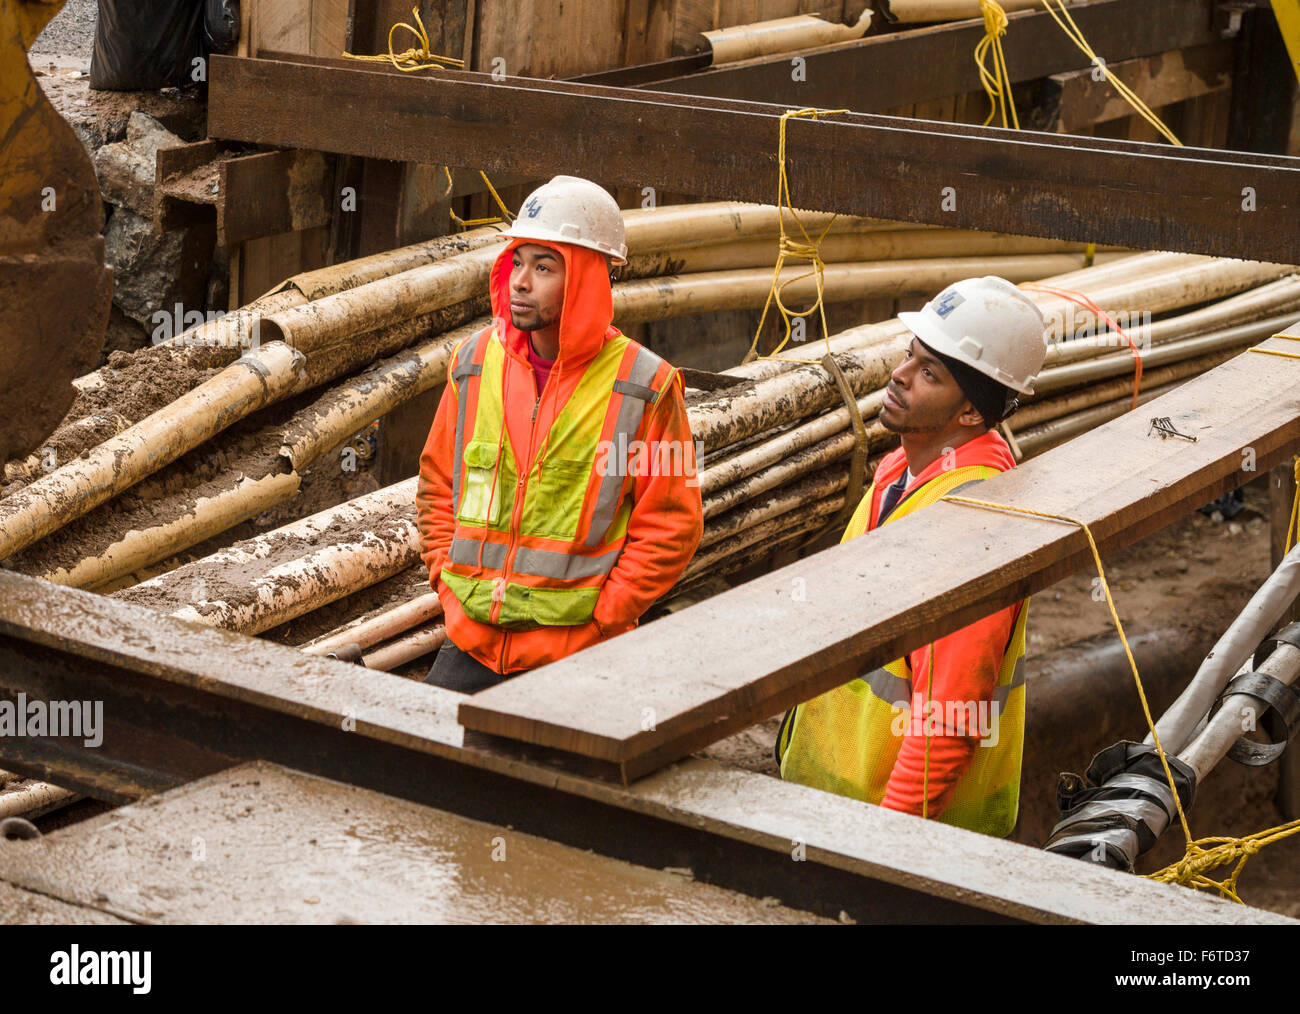 A long wait below street level. Two workers down in a in a damp ditch or excavation filled with pipes waits for - Stock Image